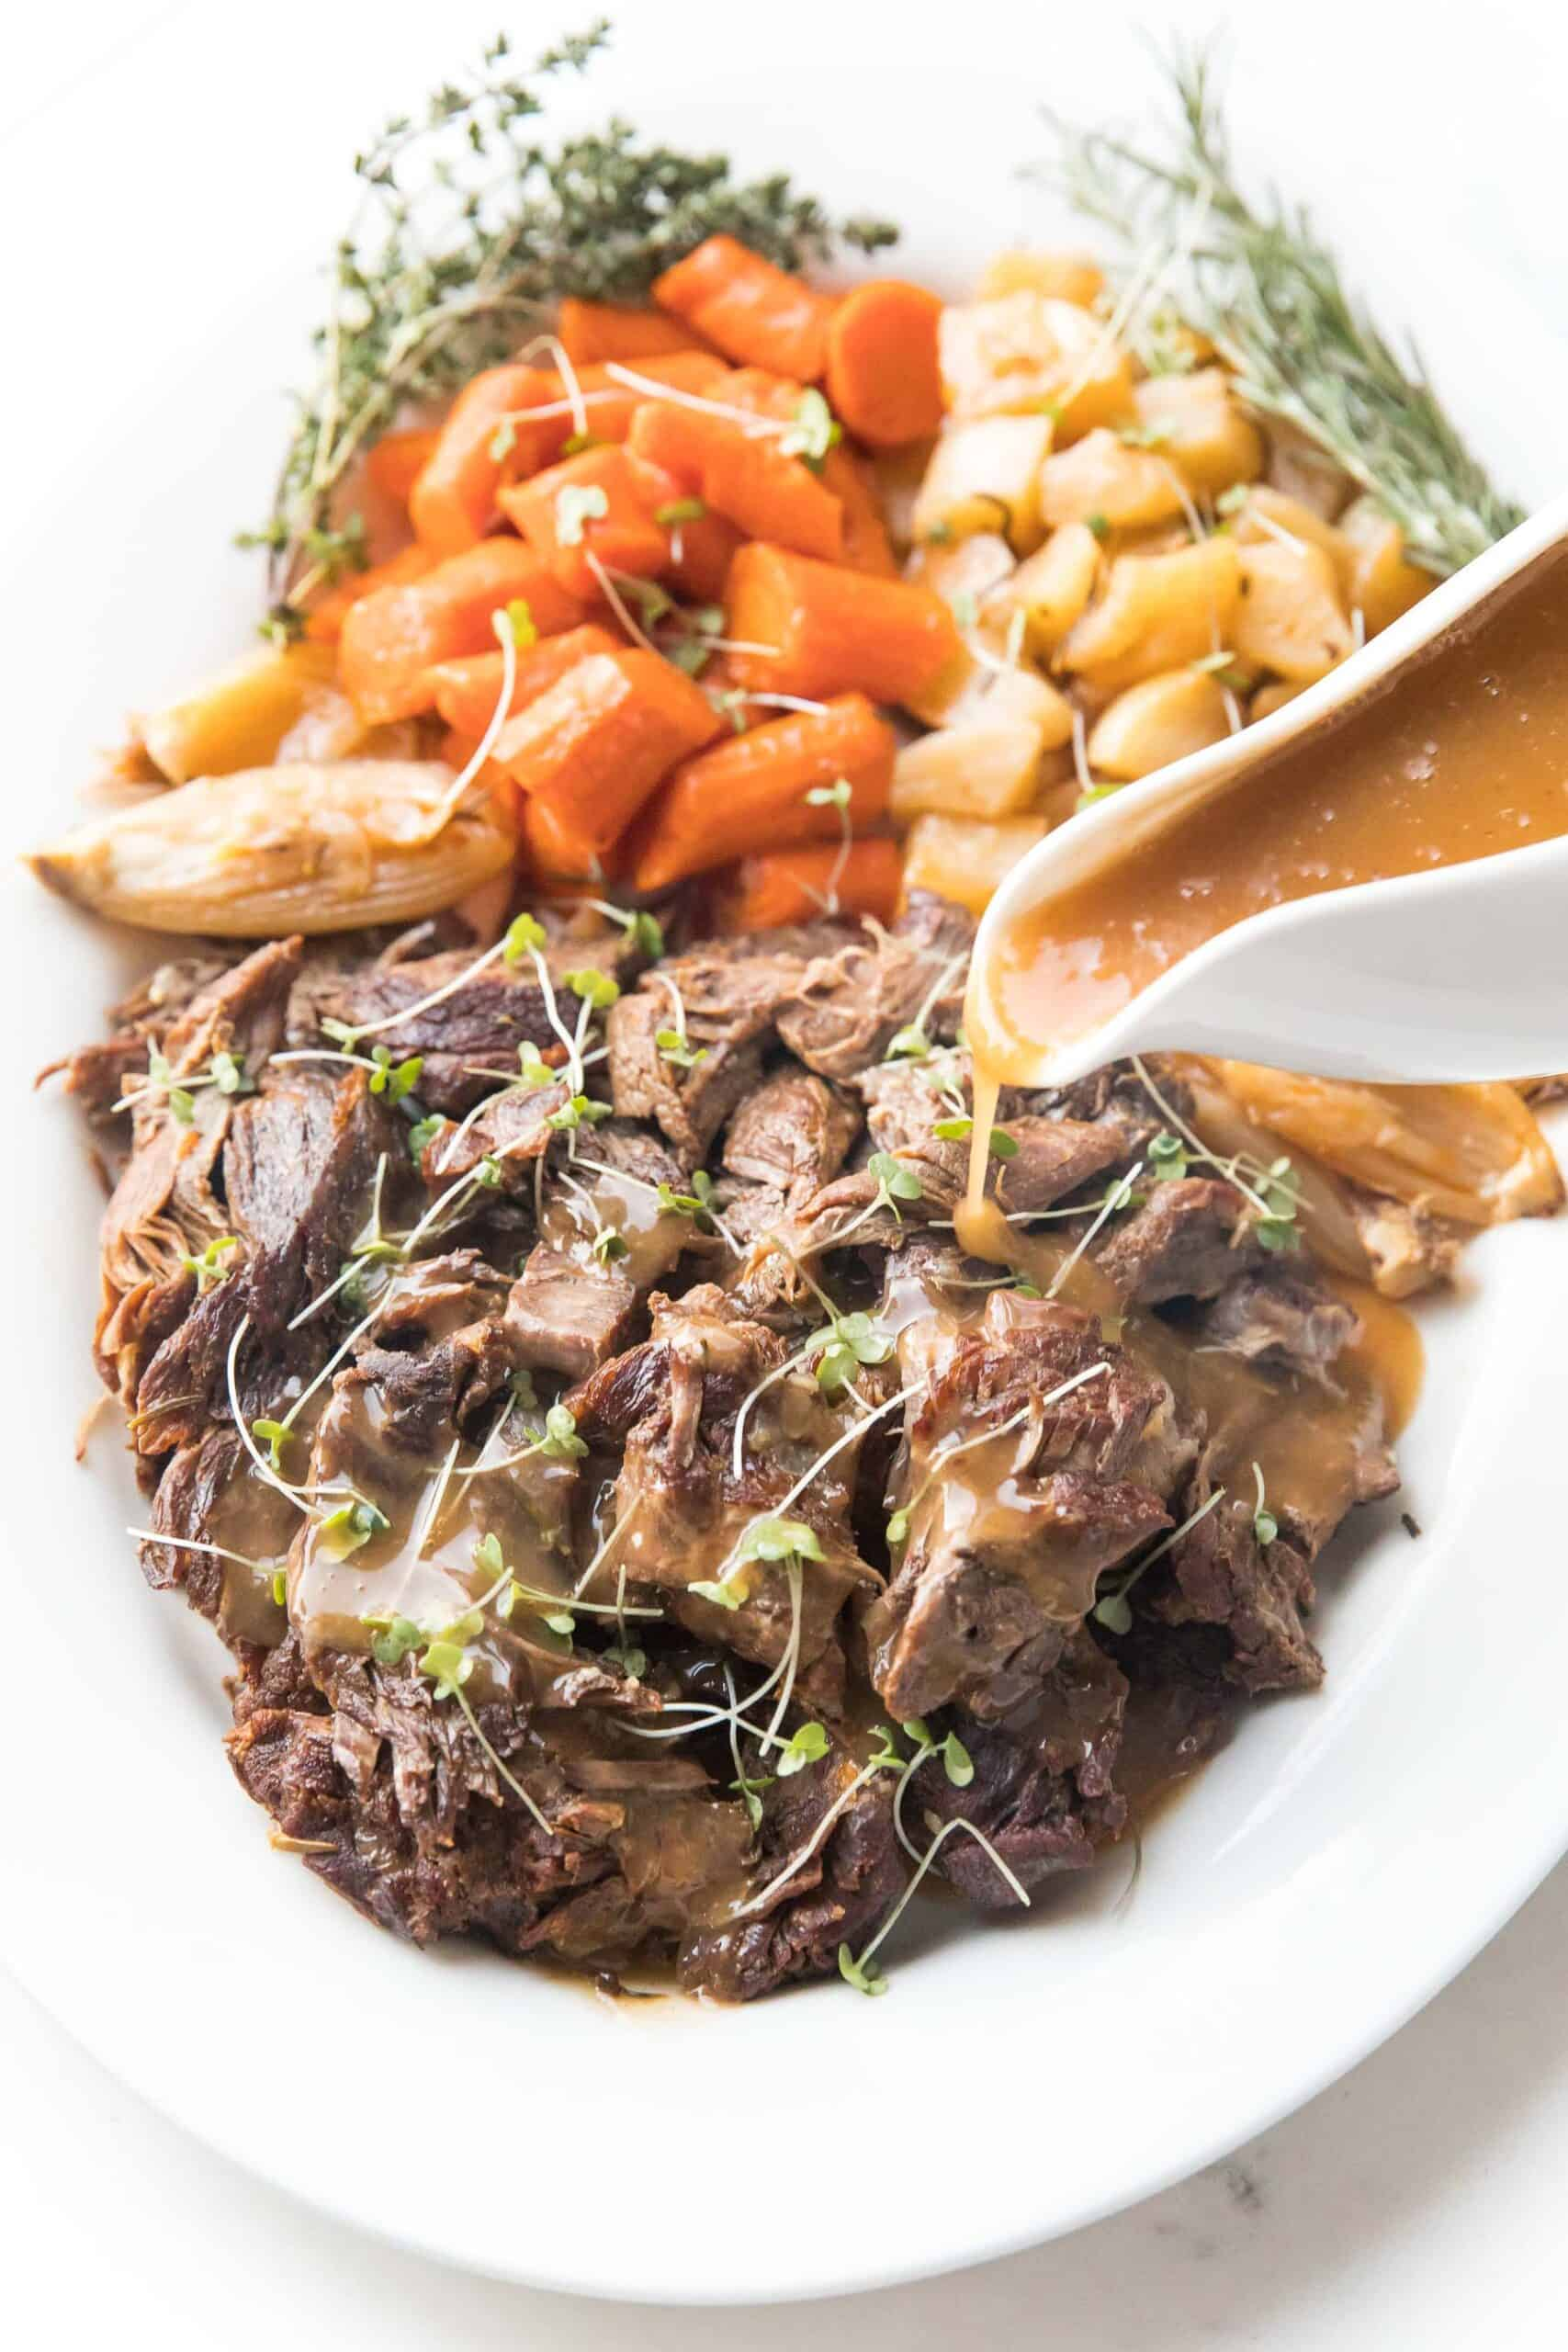 Pot roast + vegetables on a white plate with fresh herbs